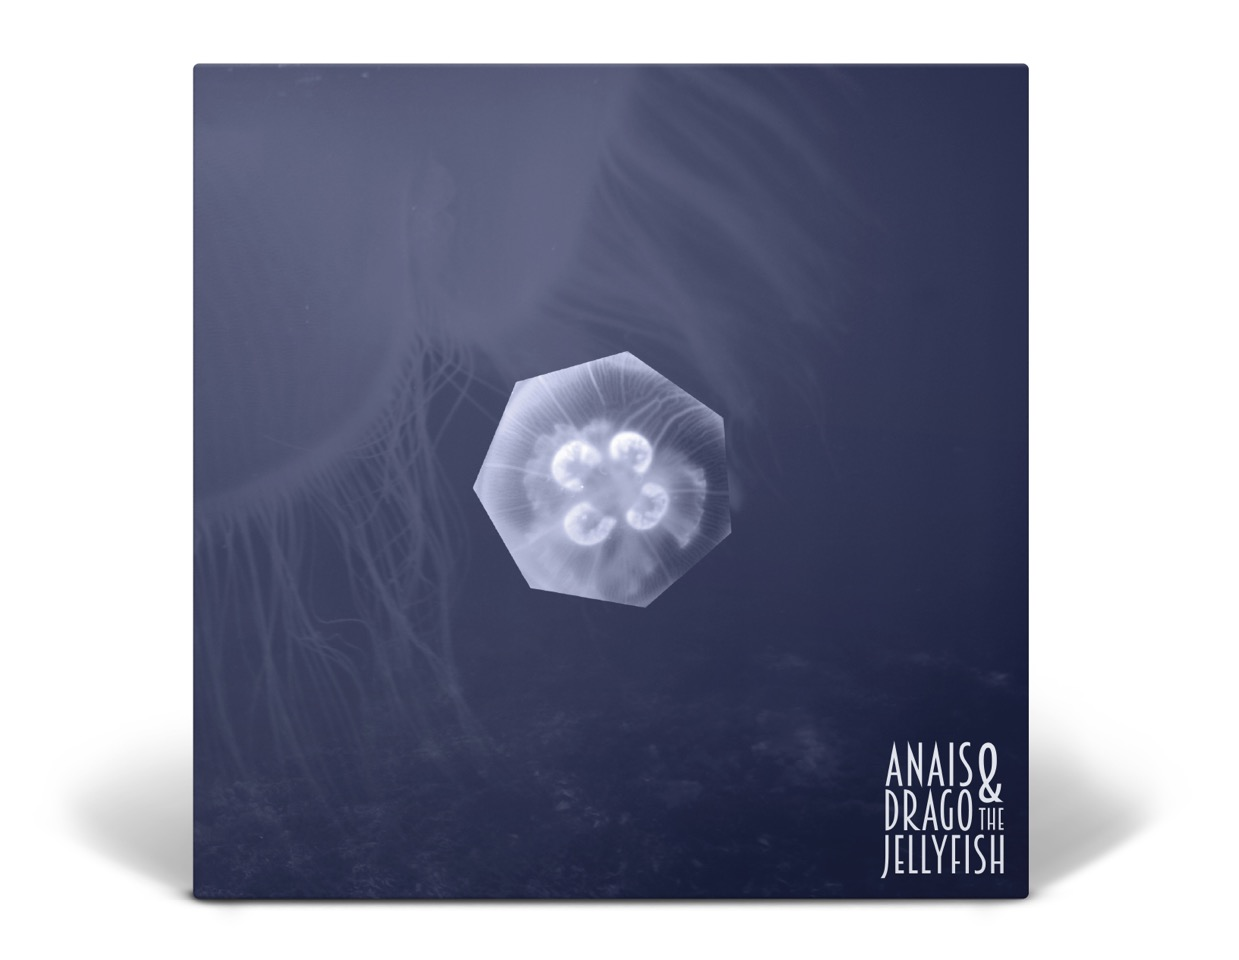 Anais Drago & The Jellyfish - CD edition - 06.10.18